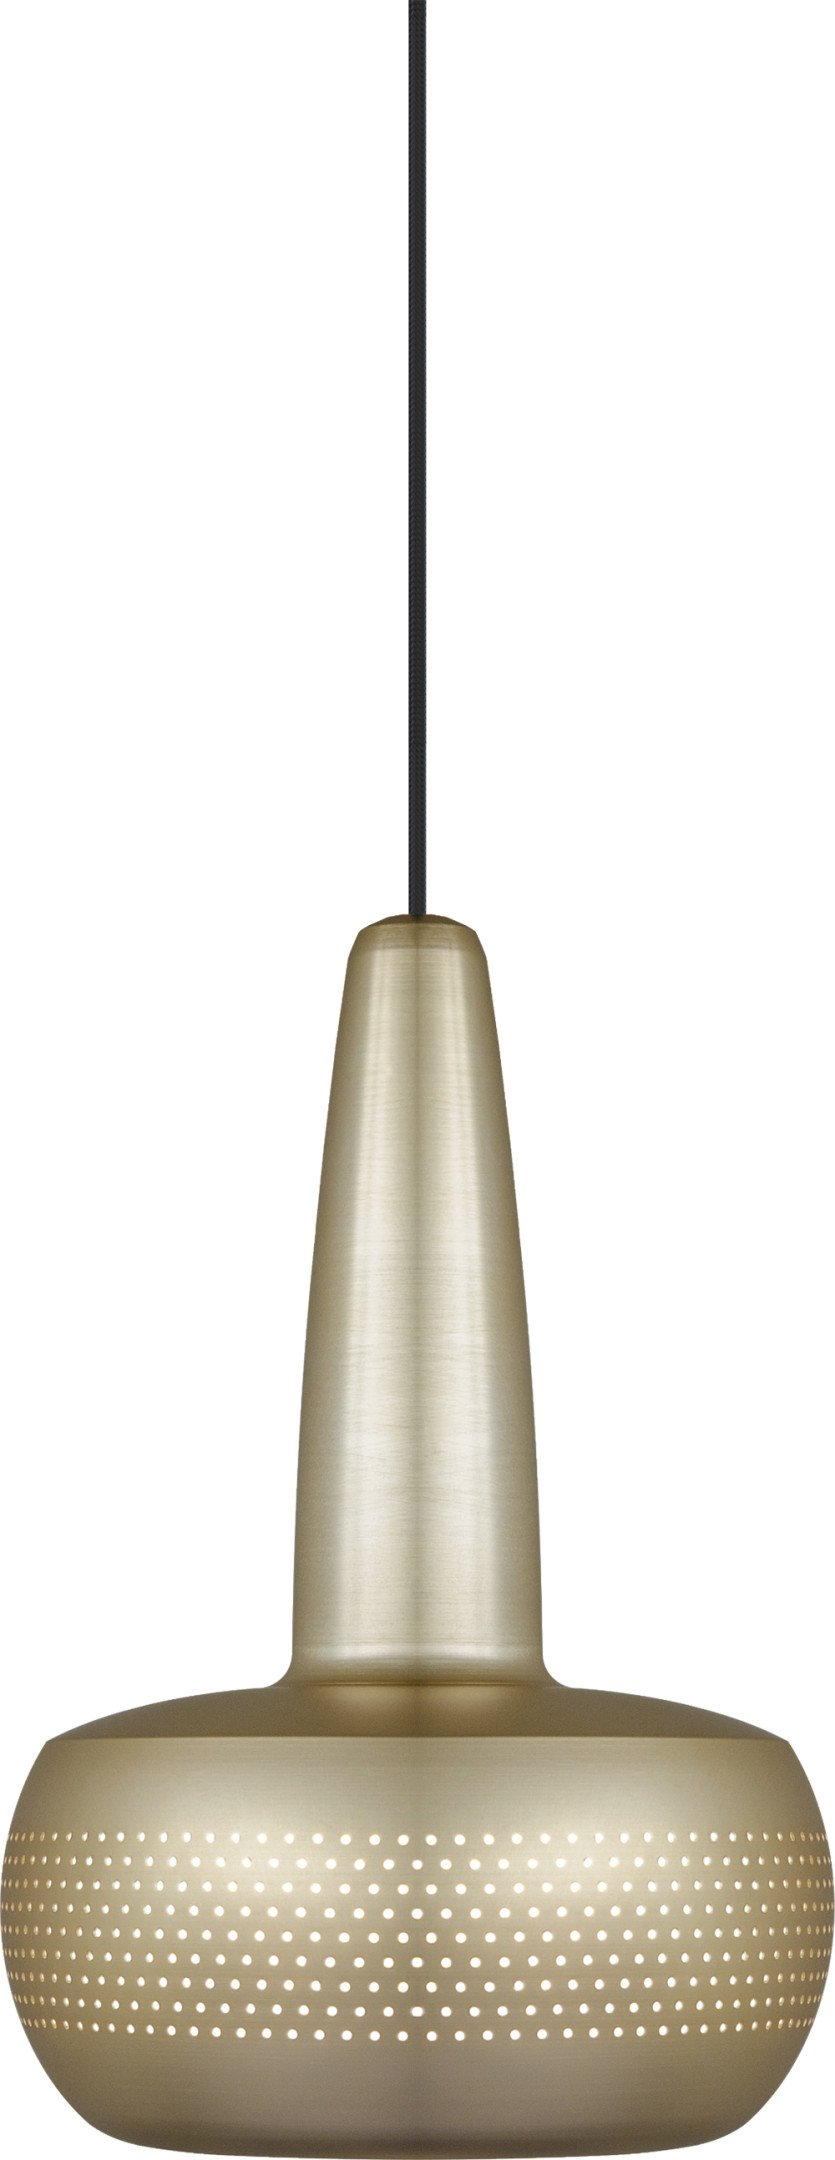 Clava Lamp Shade Brushed Brass by S. R. Christensen for UMAGE - 495660 - photo